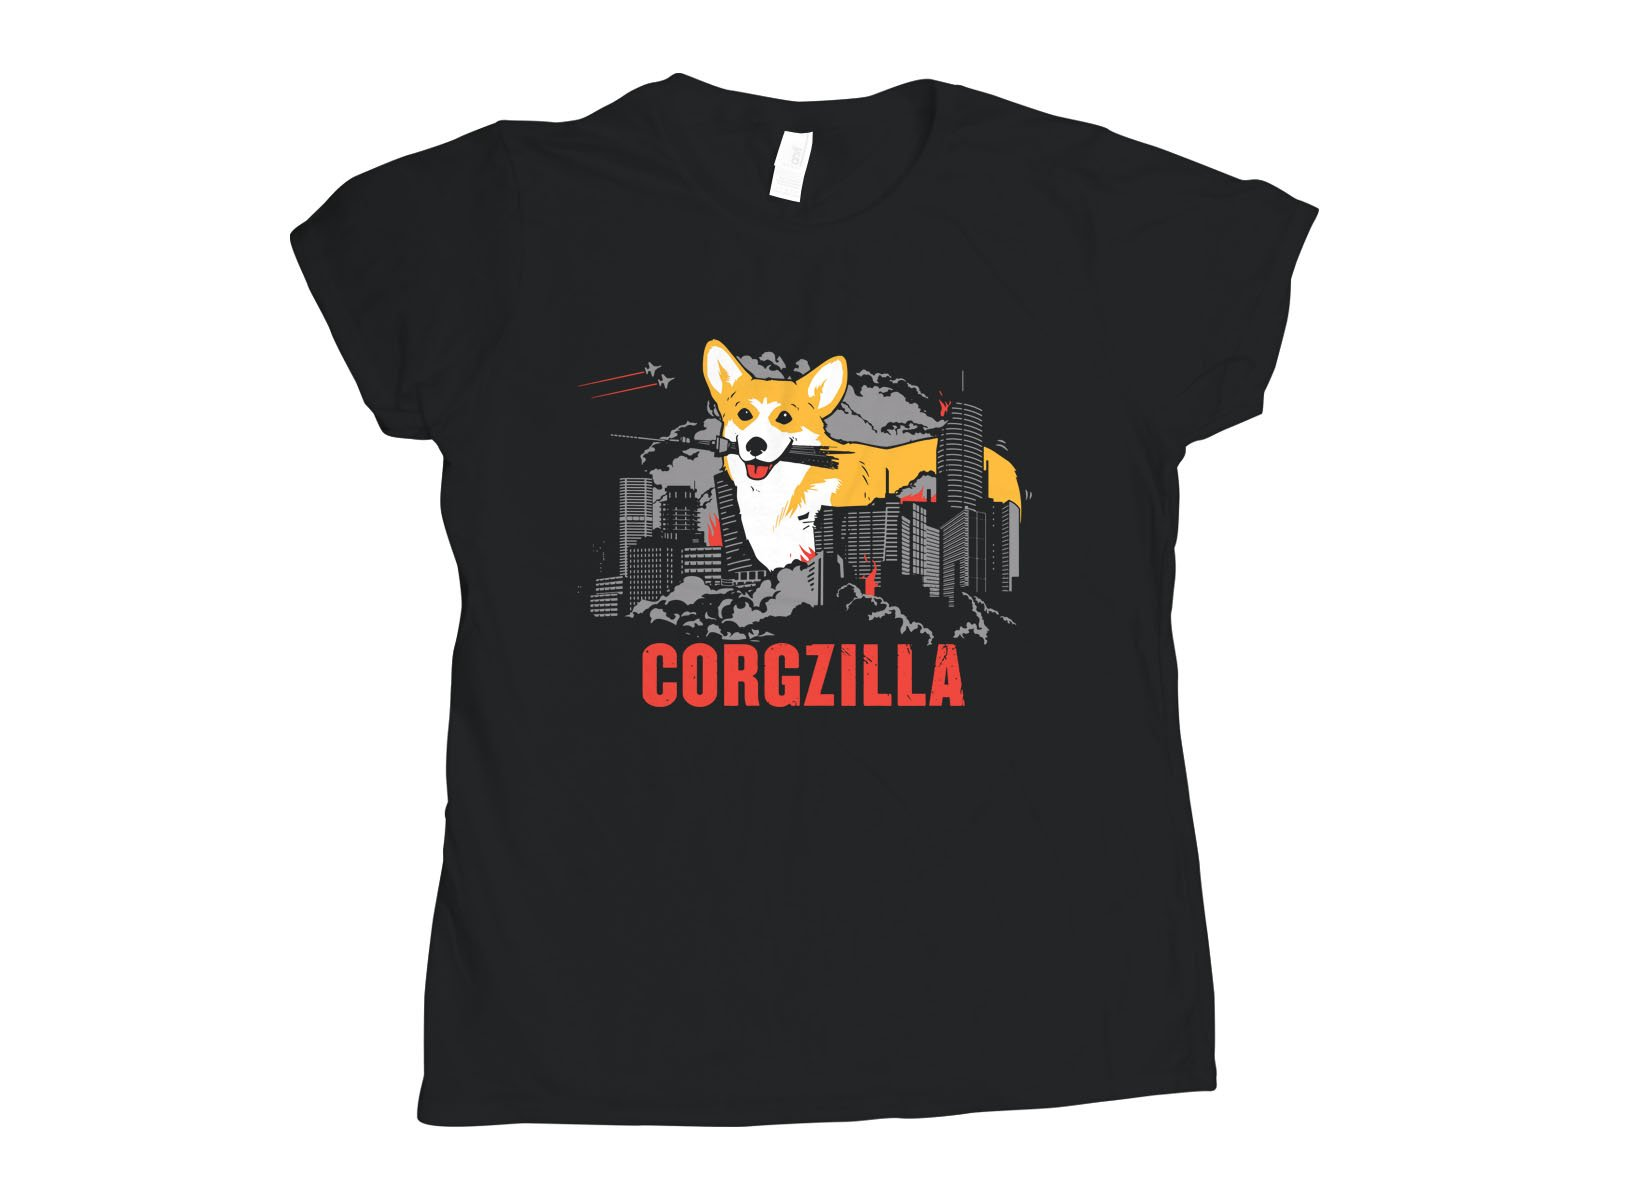 Corgzilla on Womens T-Shirt